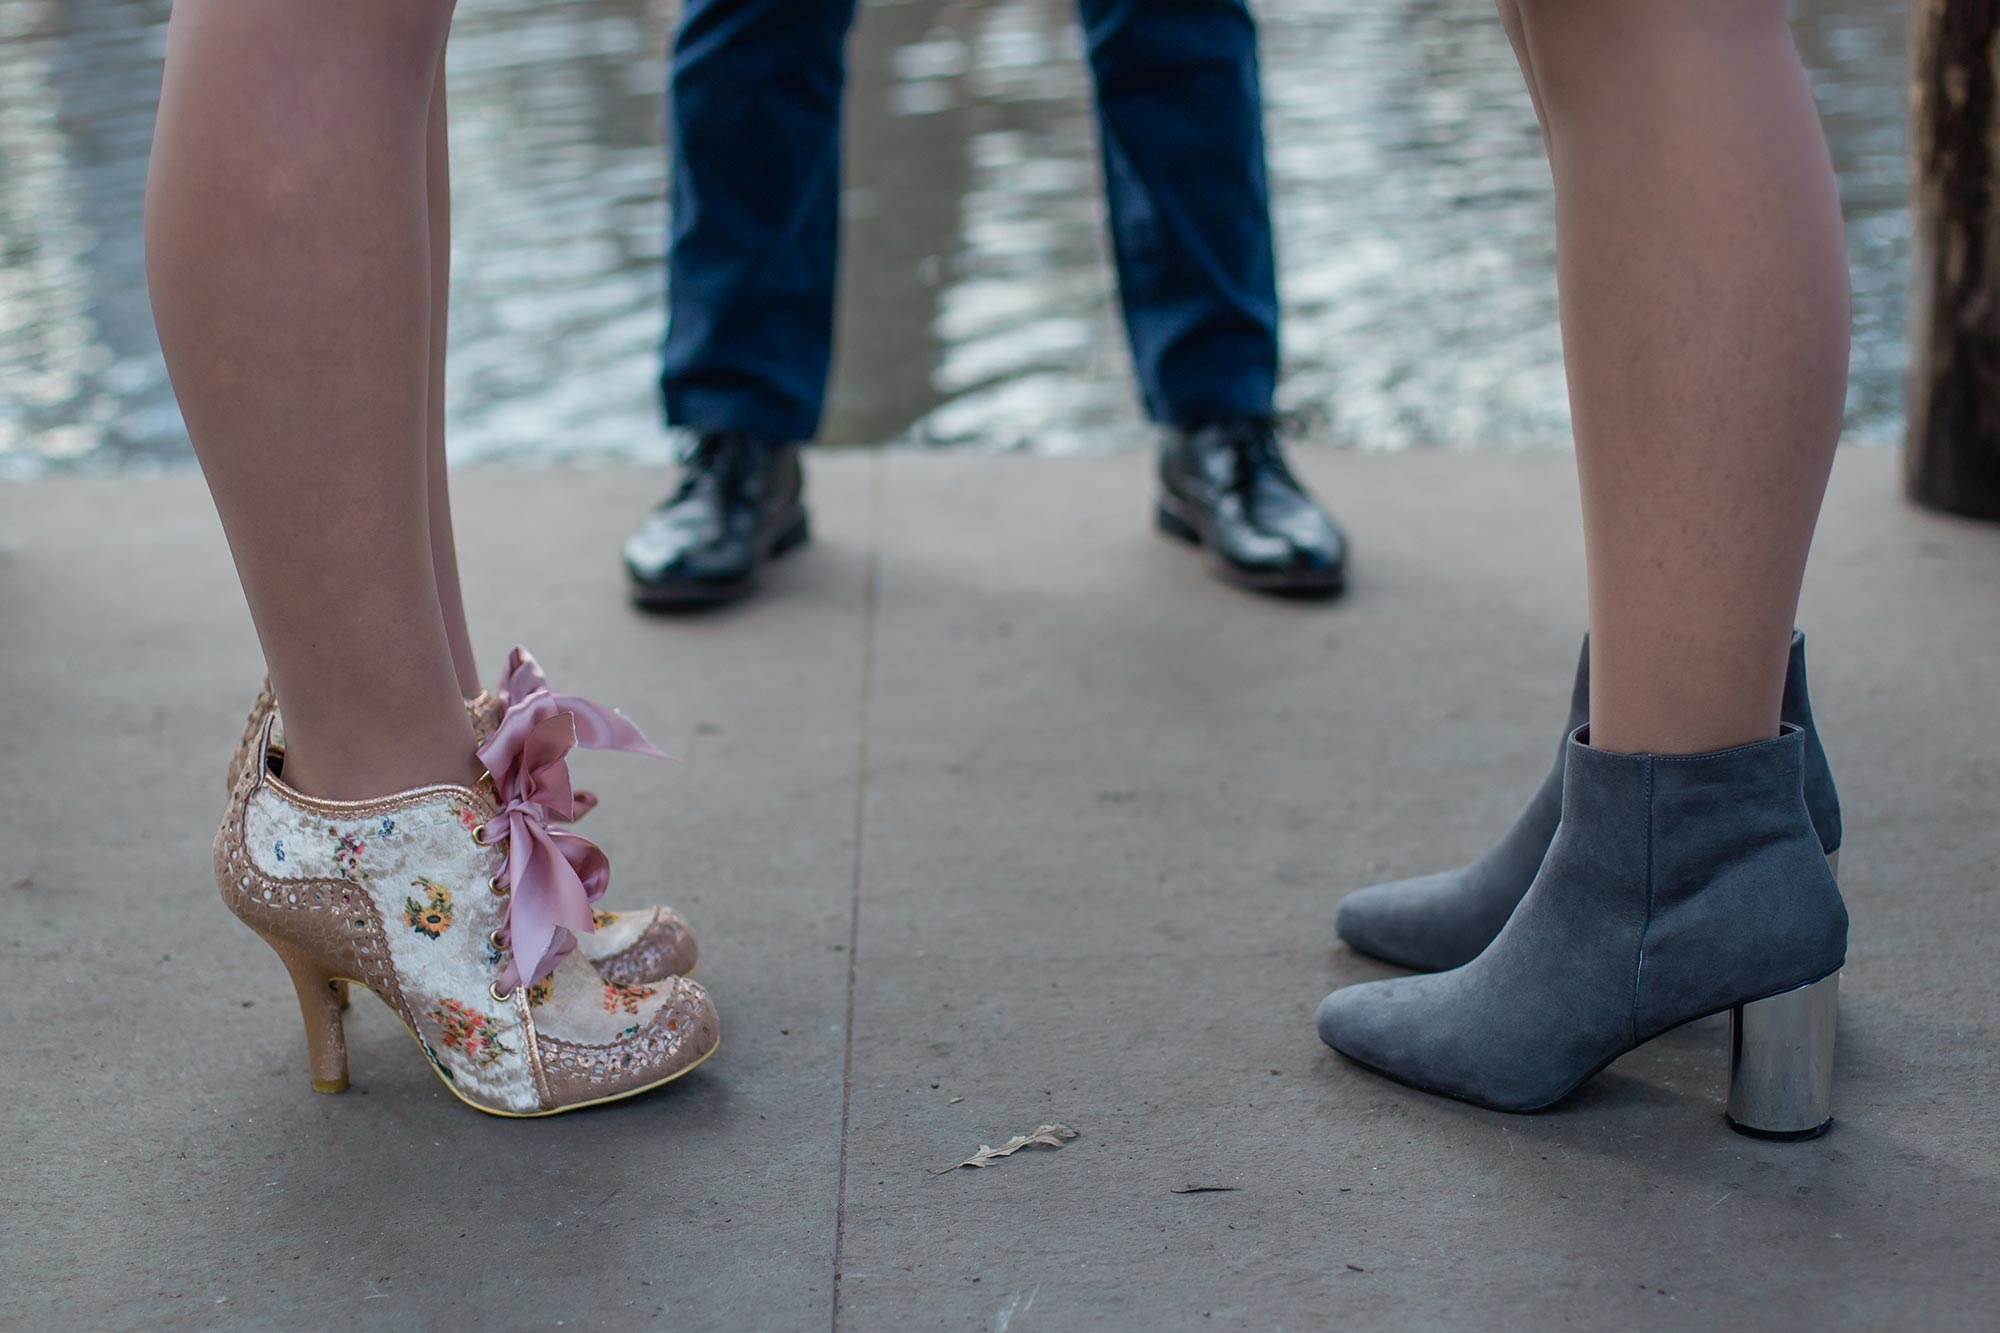 queer irish central park winter elopement kate alison photography kathryn and mary's shoes during ceremony